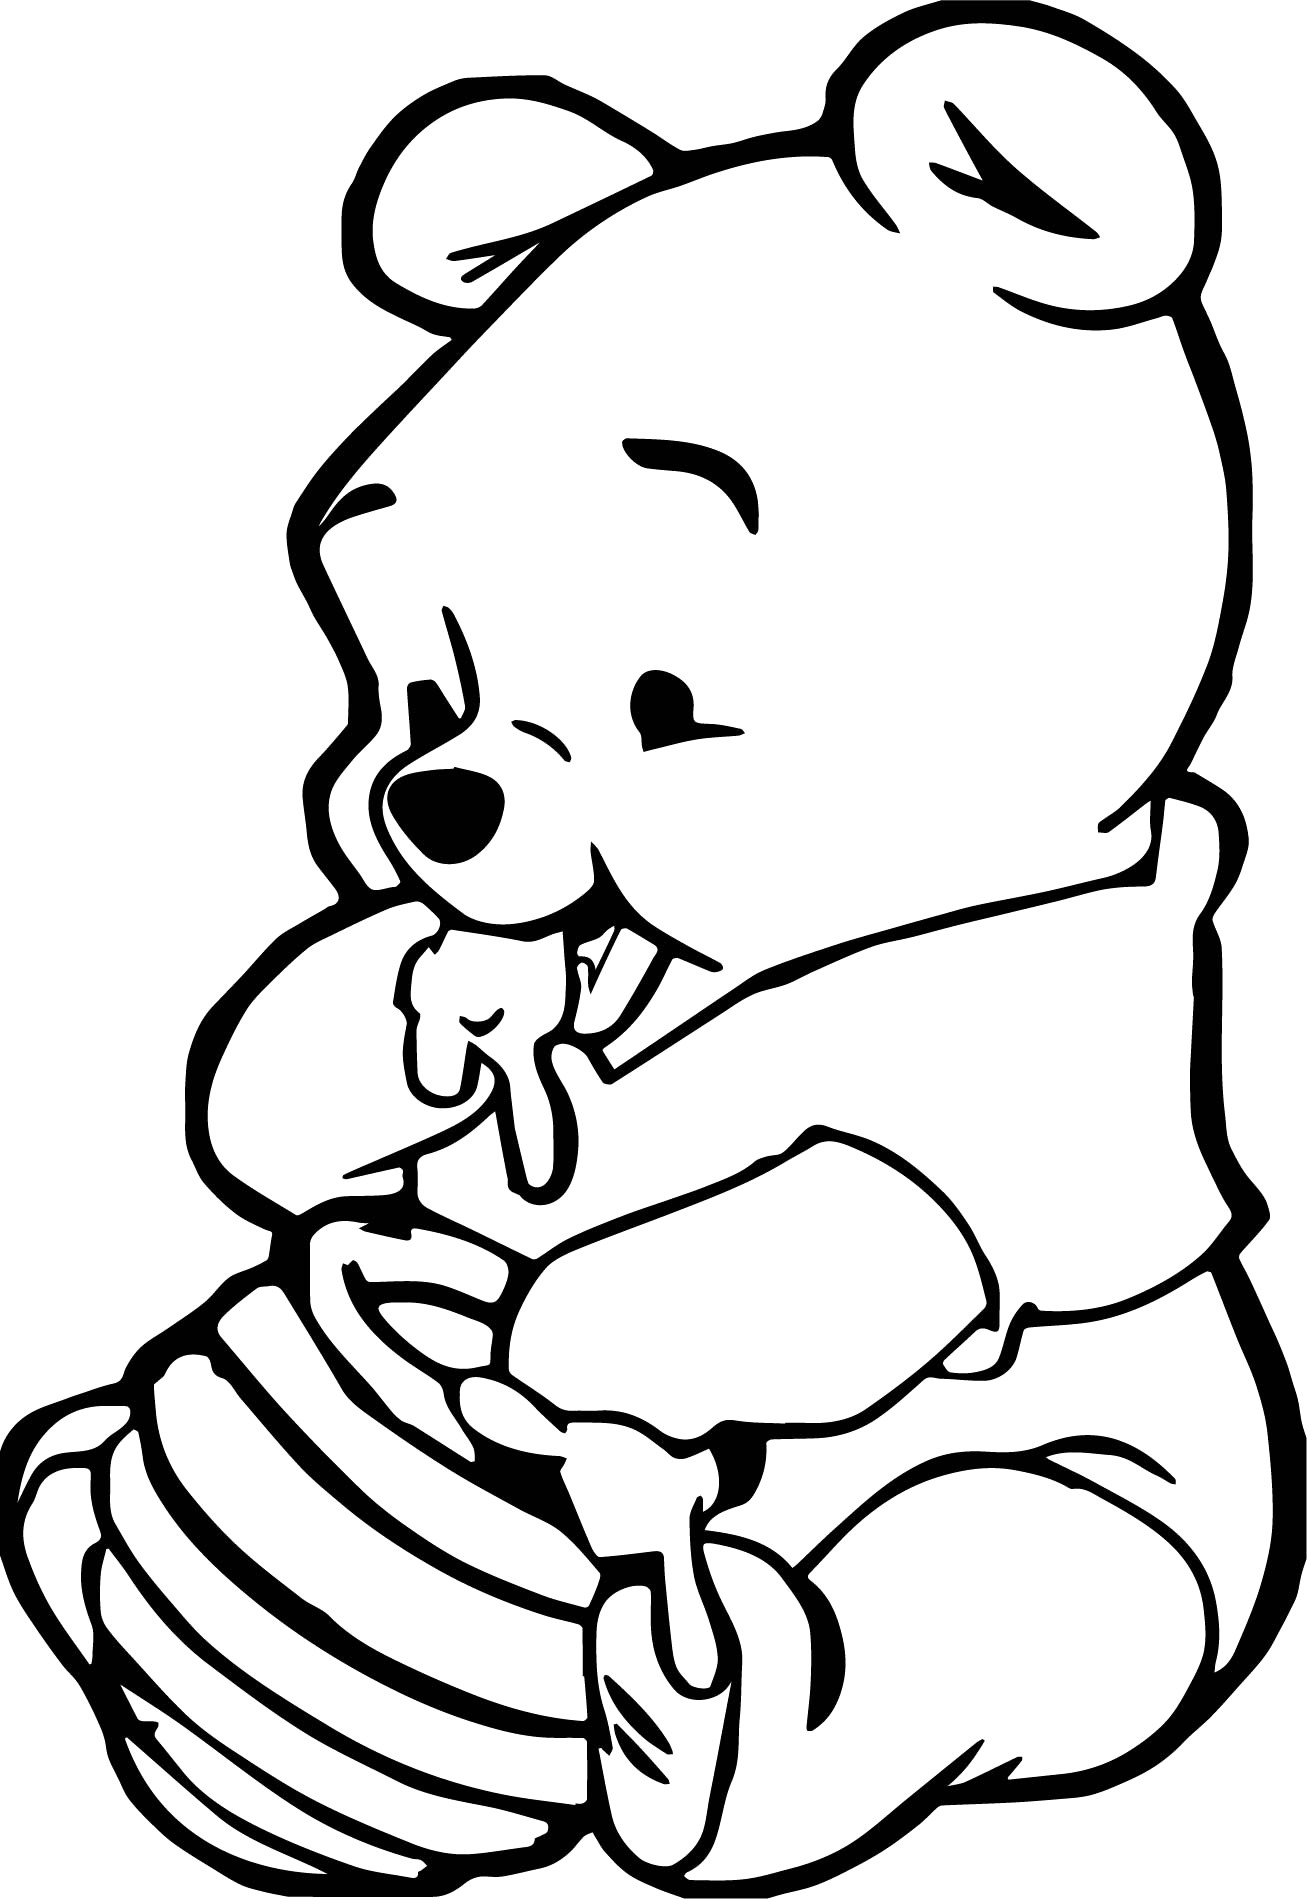 baby winnie the pooh coloring pages baby pooh coloring pages disneyclipscom pages baby the winnie pooh coloring